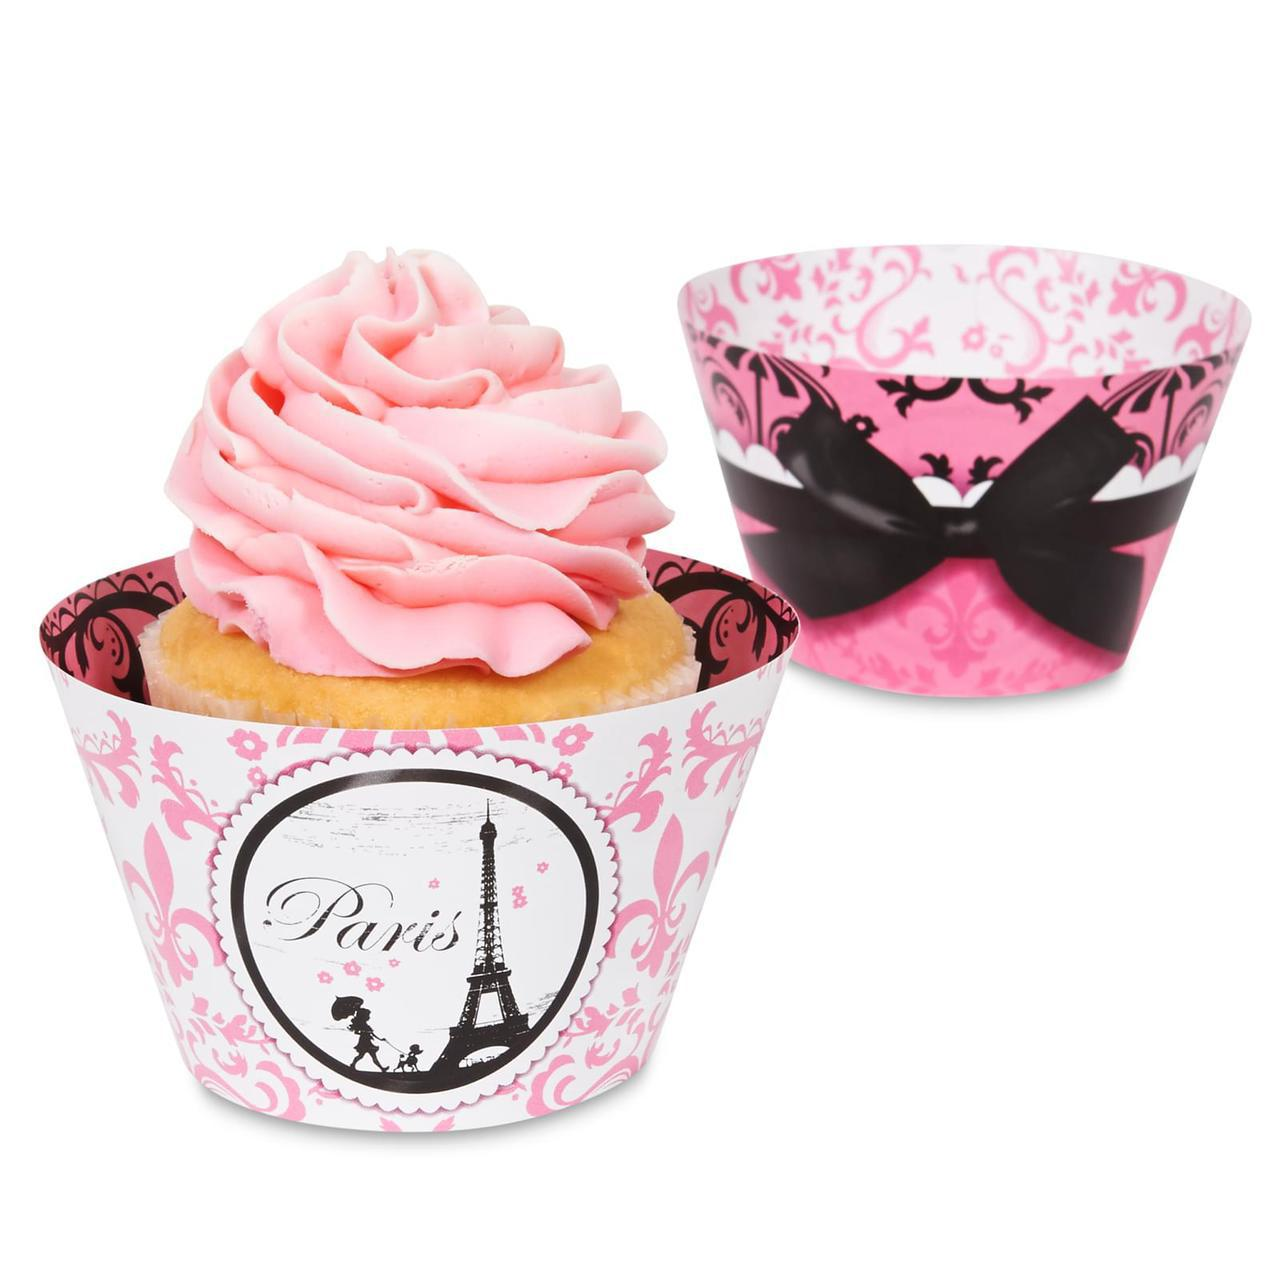 Cupcakes with Paris damask wraps